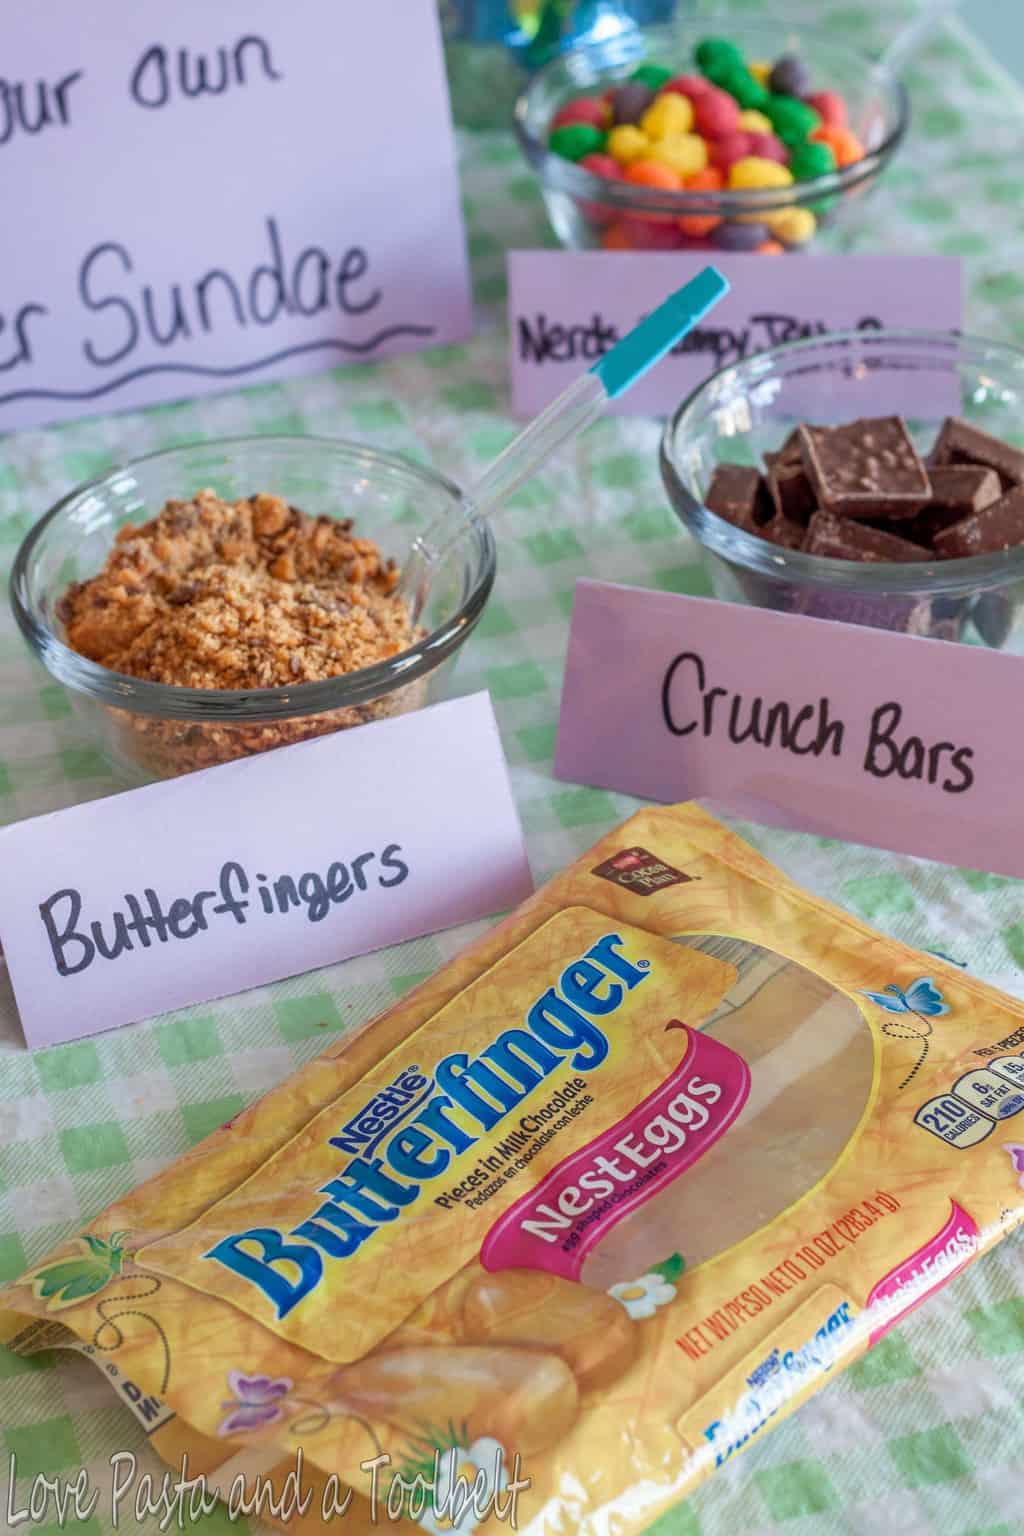 Easter Party Ideas With Nestle Love Pasta And A Tool Belt Ad